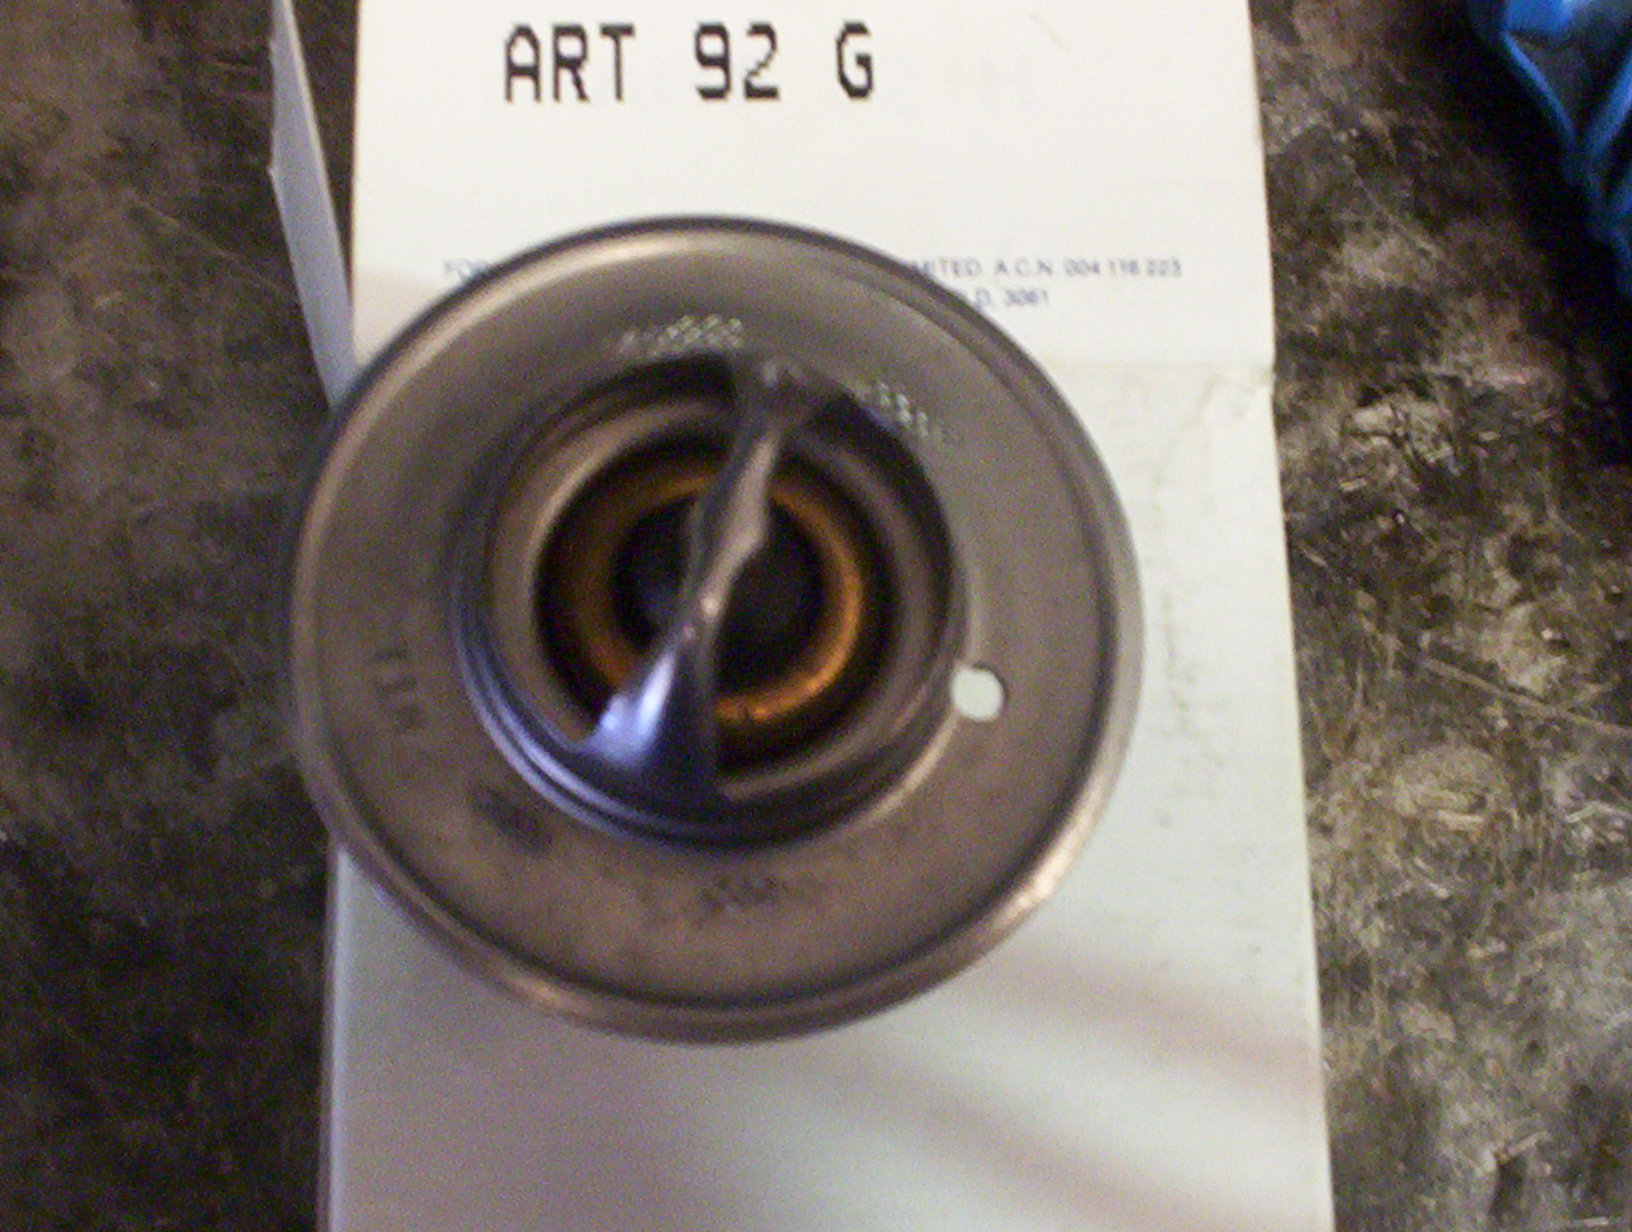 Genuine Ford thermostats. 002.jpg